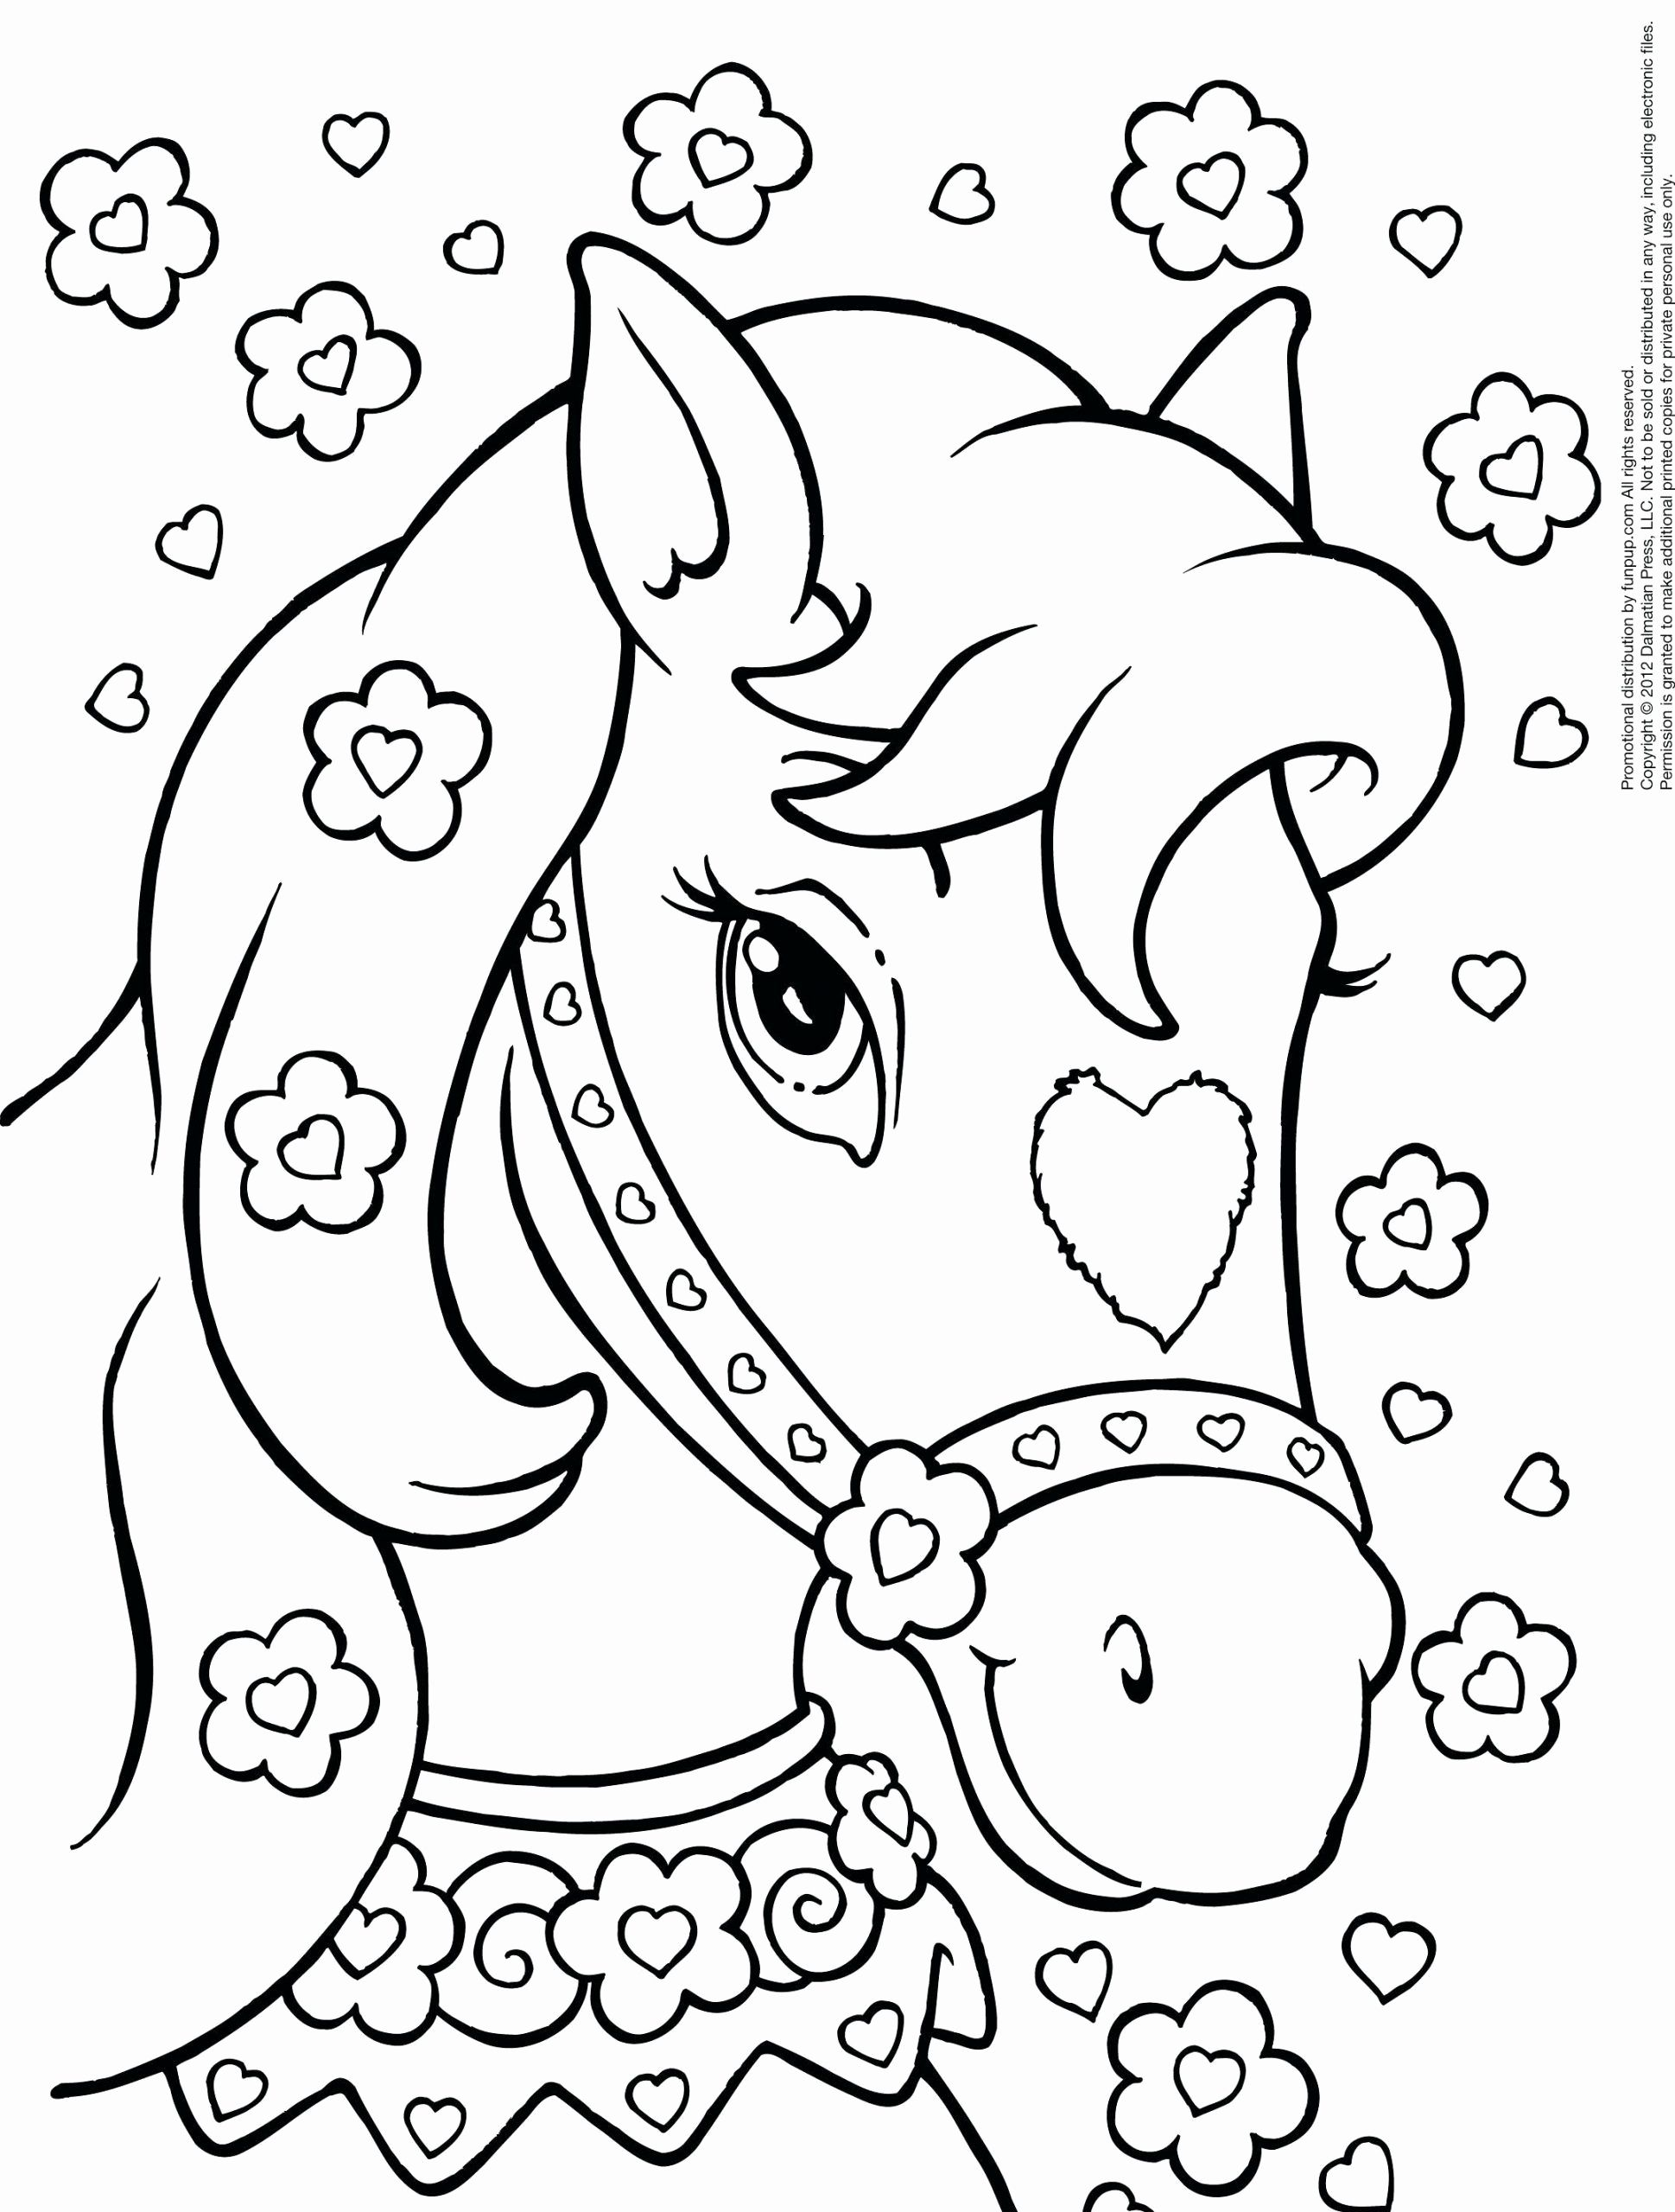 Free Coloring Pages Printable Disney Kids And Teens Unicorn Coloring Pages Disney Princess Coloring Pages Kids Printable Coloring Pages